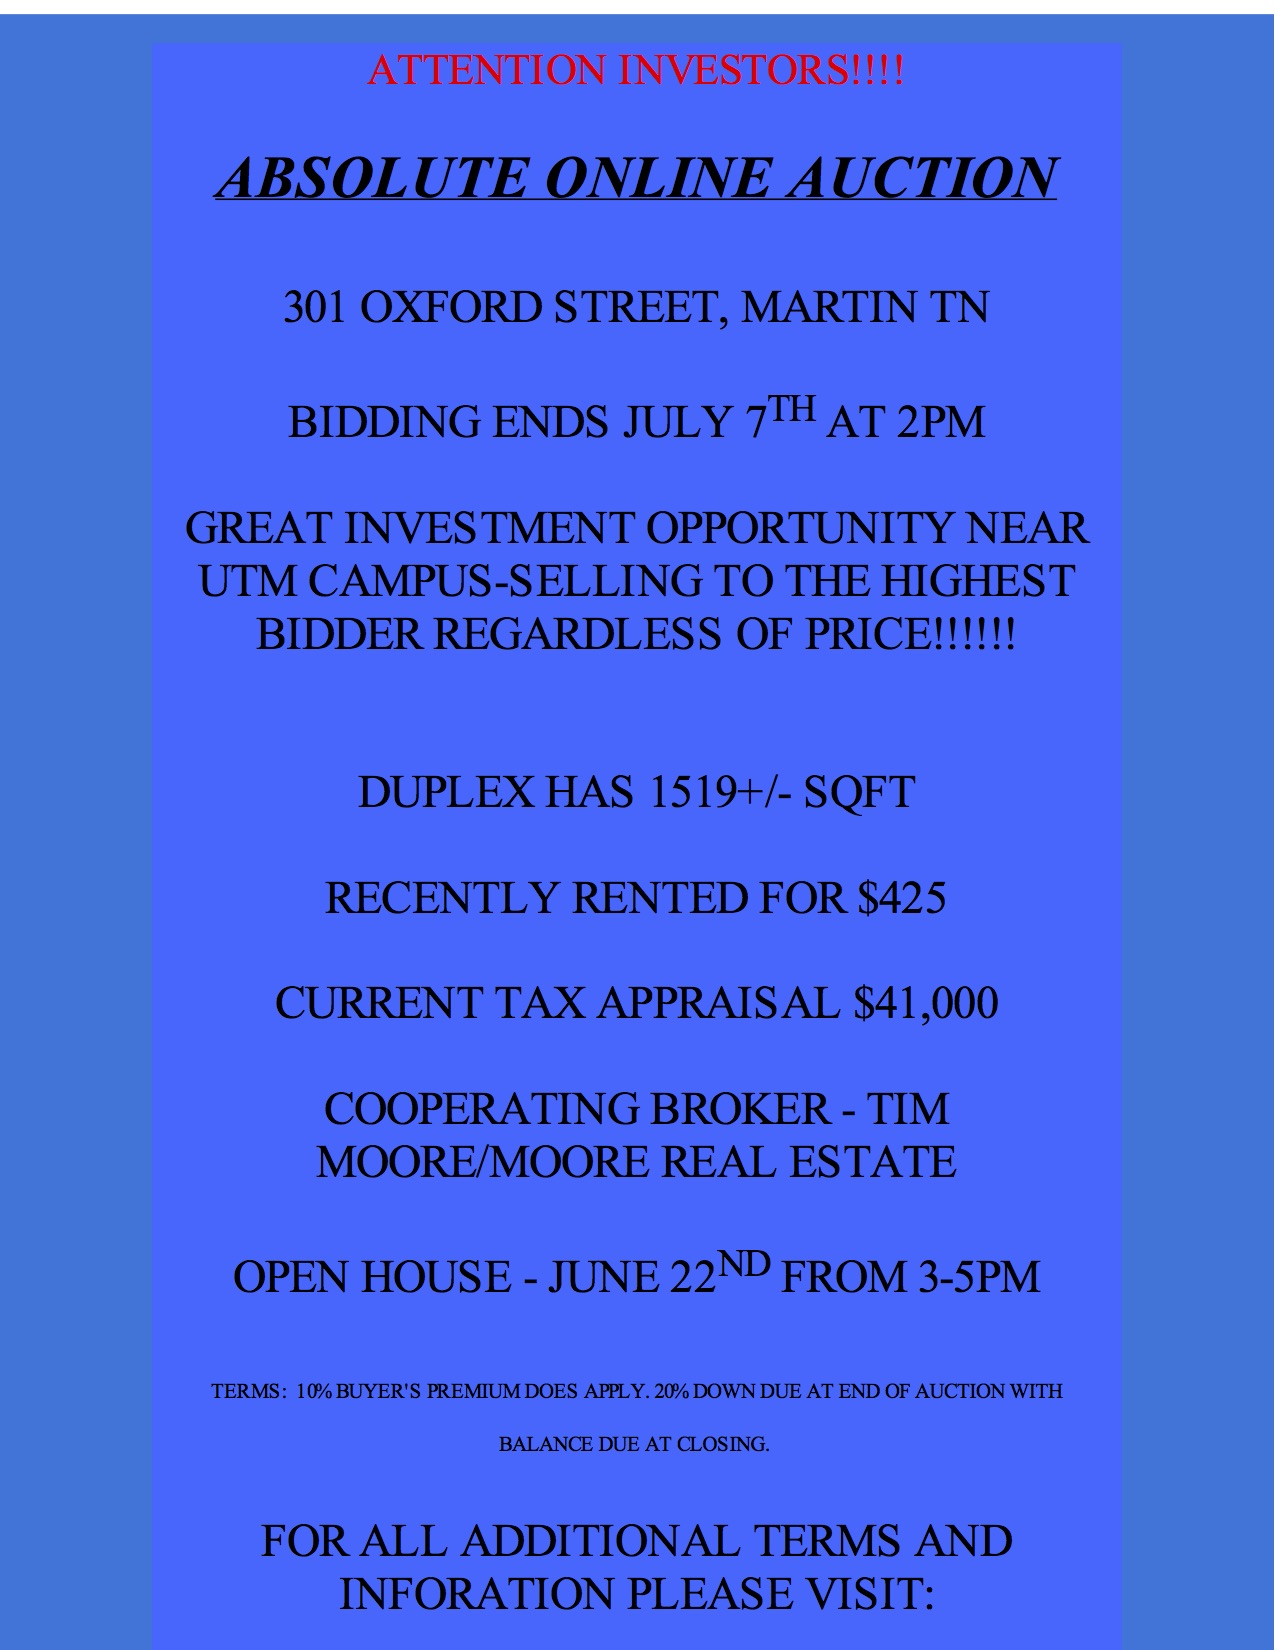 absolute online auction 301 oxford st martin tn near utm